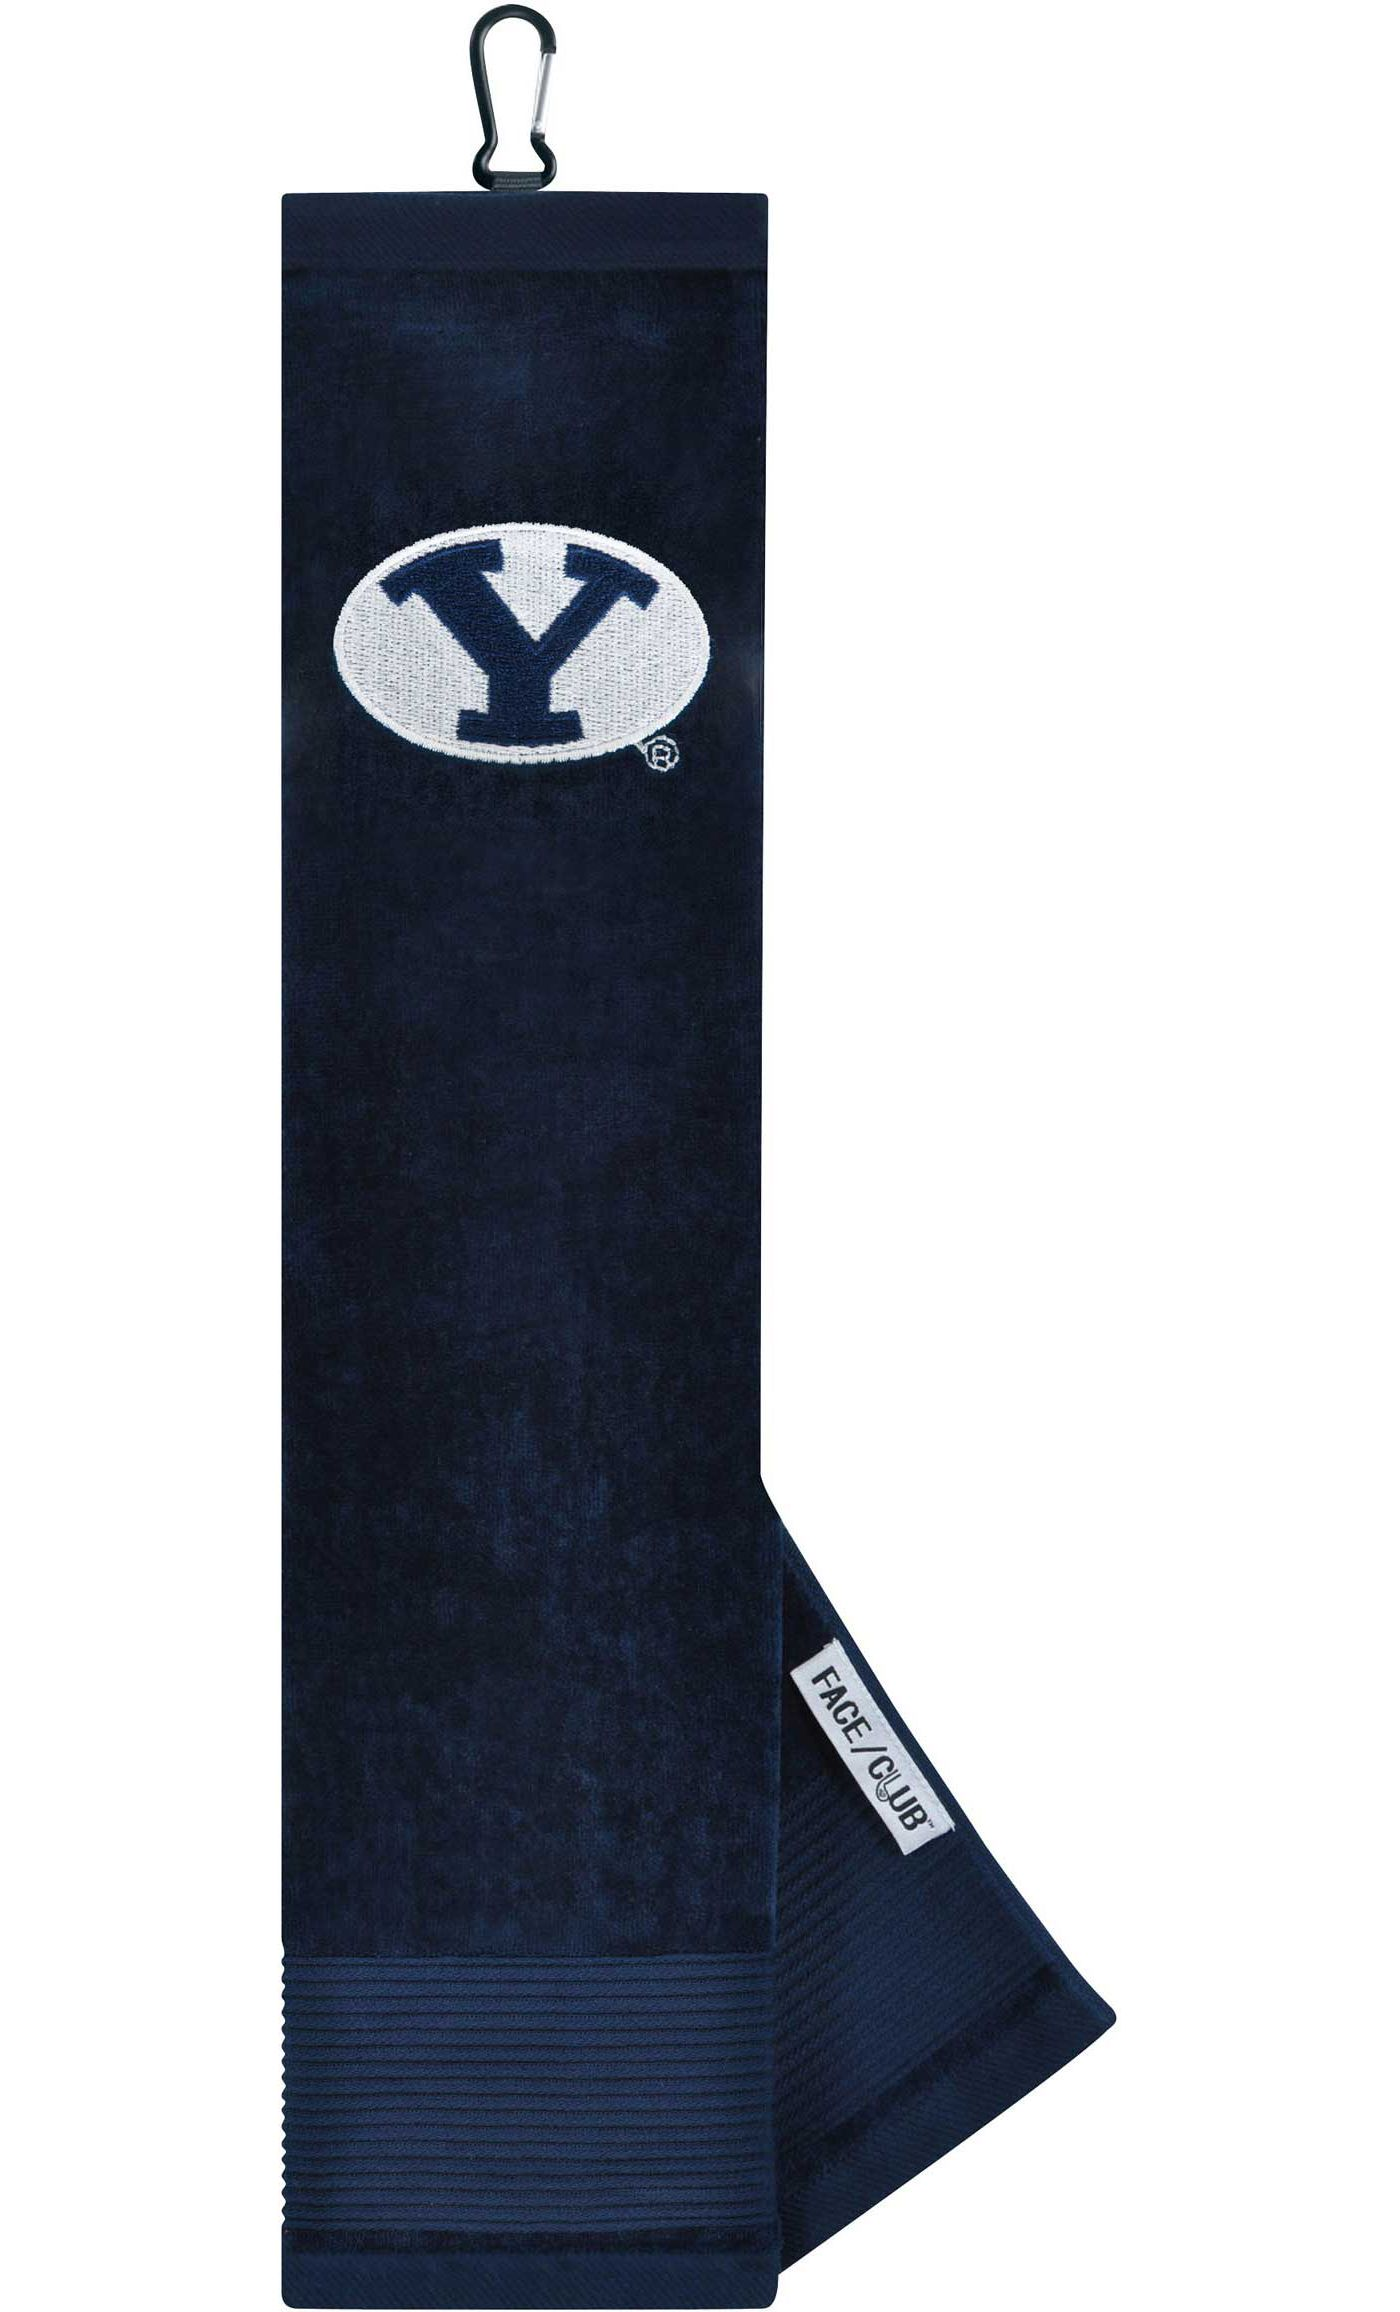 Team Effort BYU Cougars Embroidered Face/Club Tri-Fold Towel